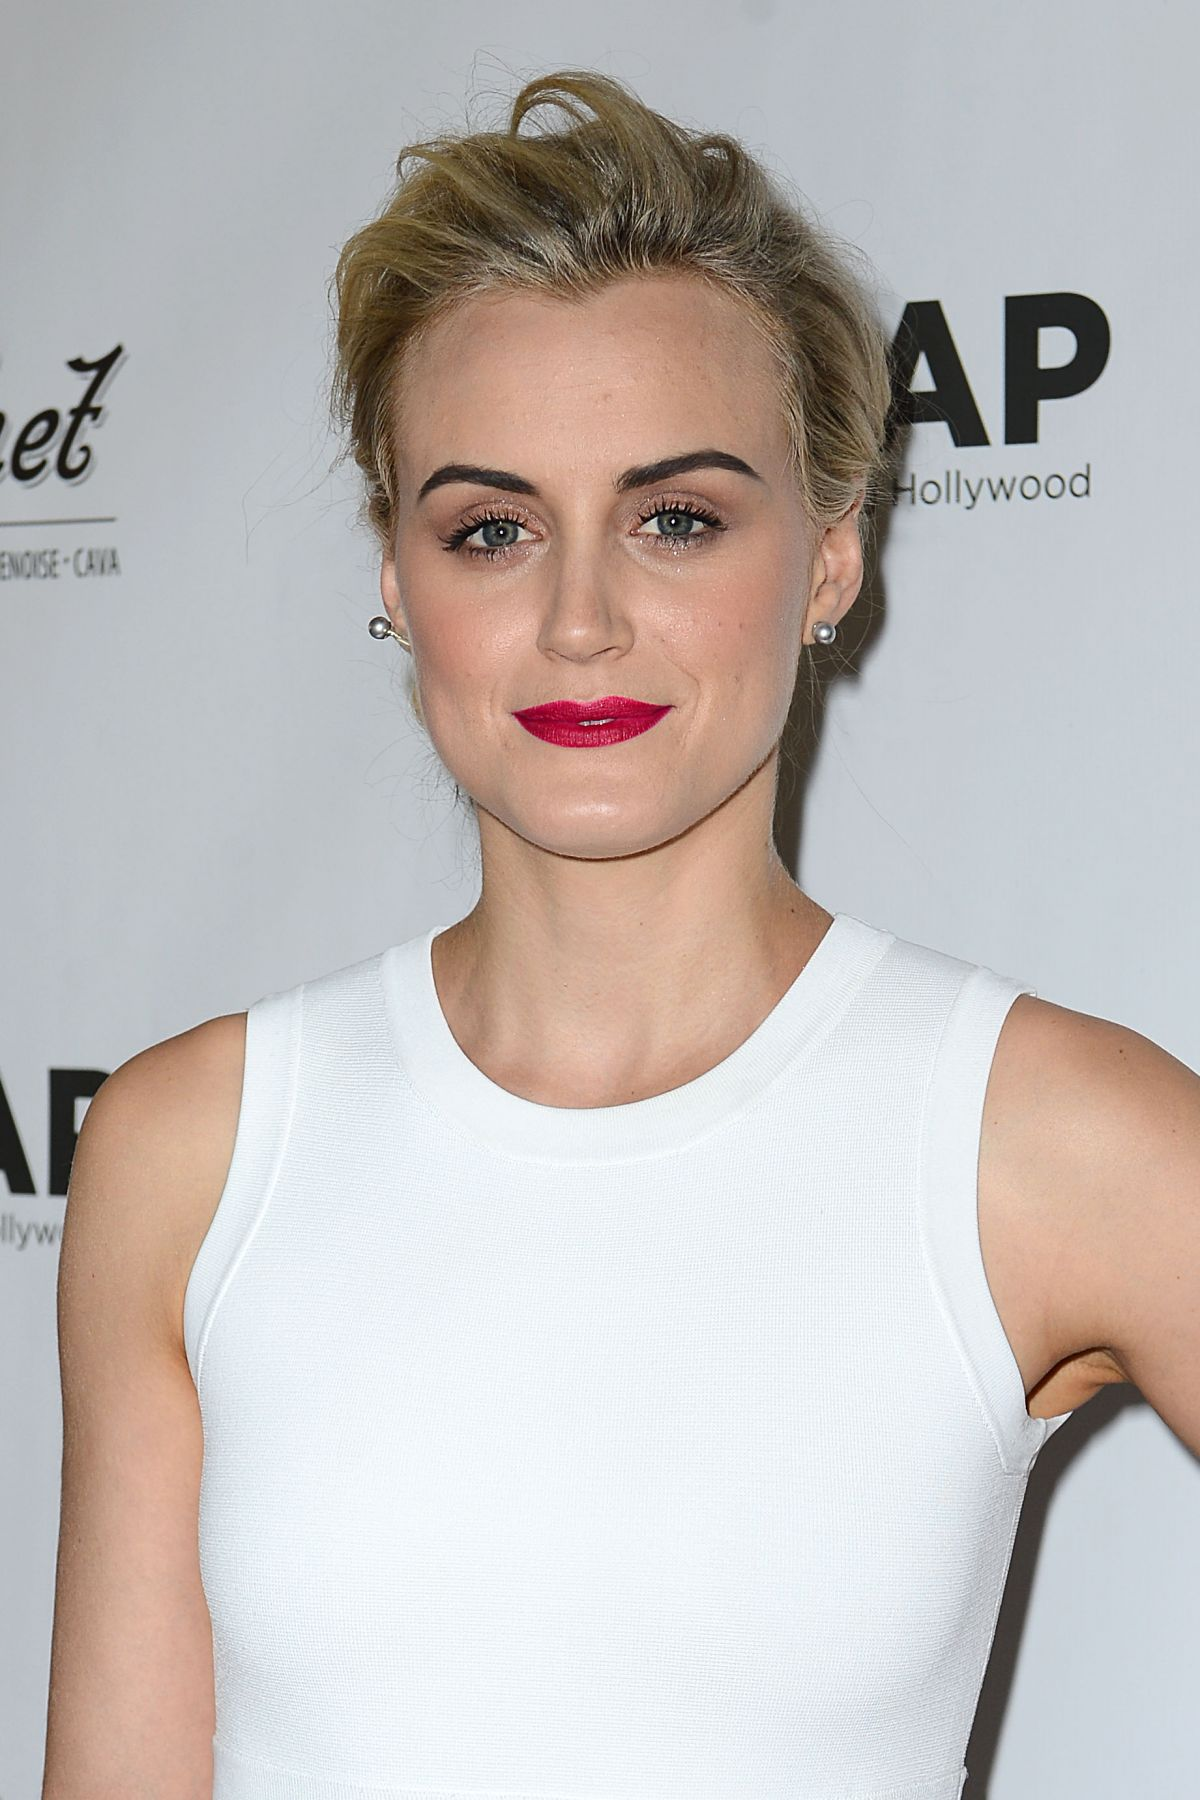 TAYLOR SCHILLING at Wrap's First Annual Emmy Party in West ...Taylor Schilling Argo